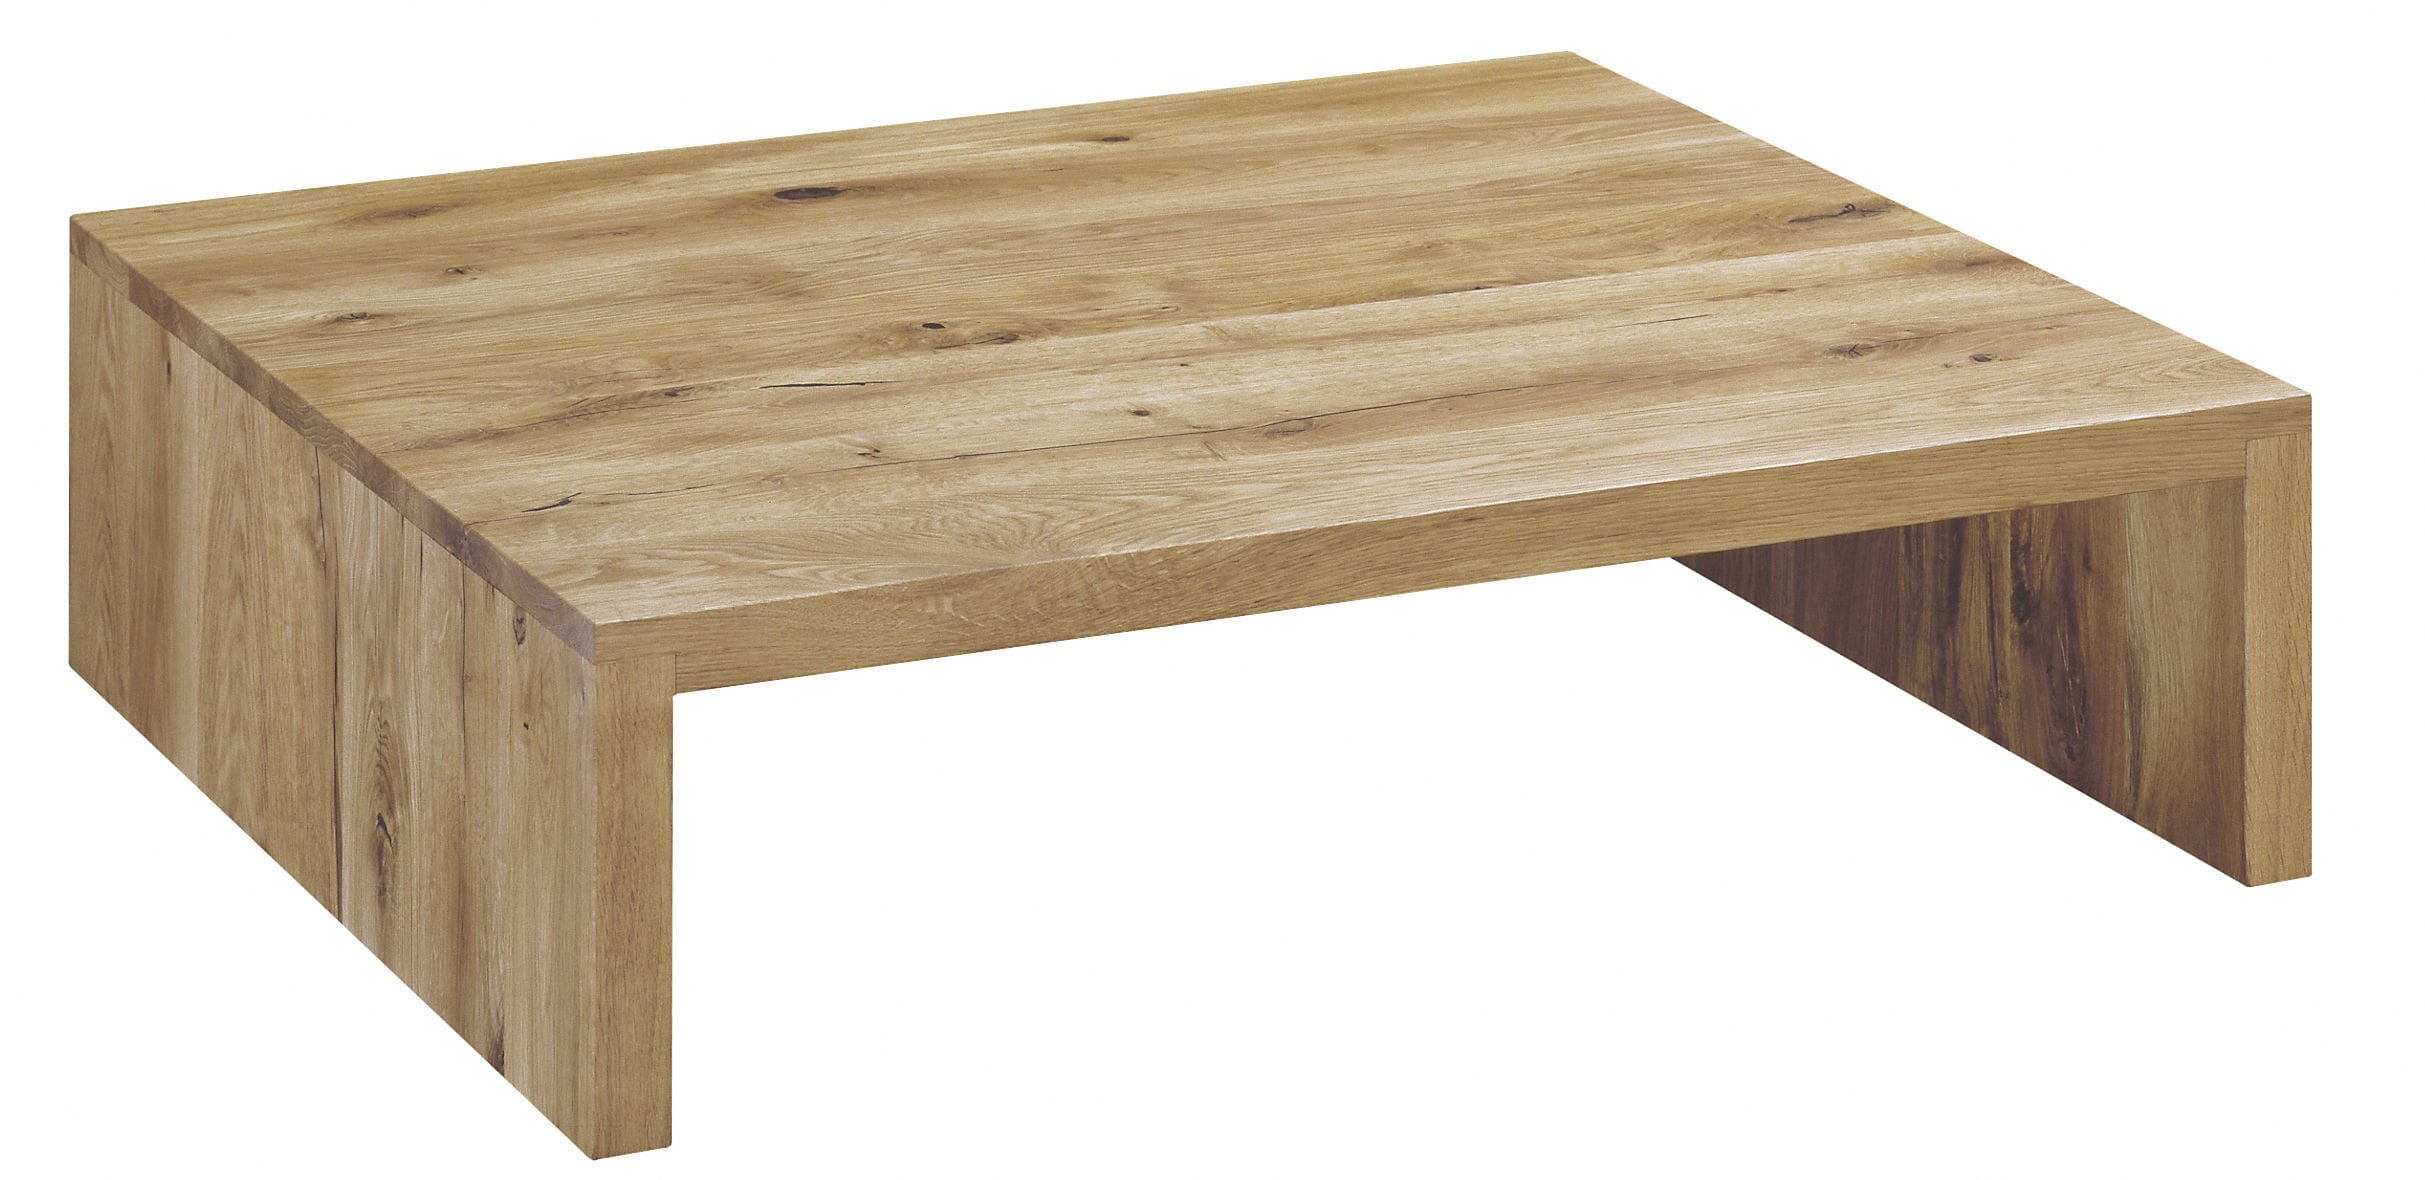 Captivating Contemporary Coffee Table / Oak / Oiled Wood / White Oak   CT01 BASSO By  Philipp Mainzer